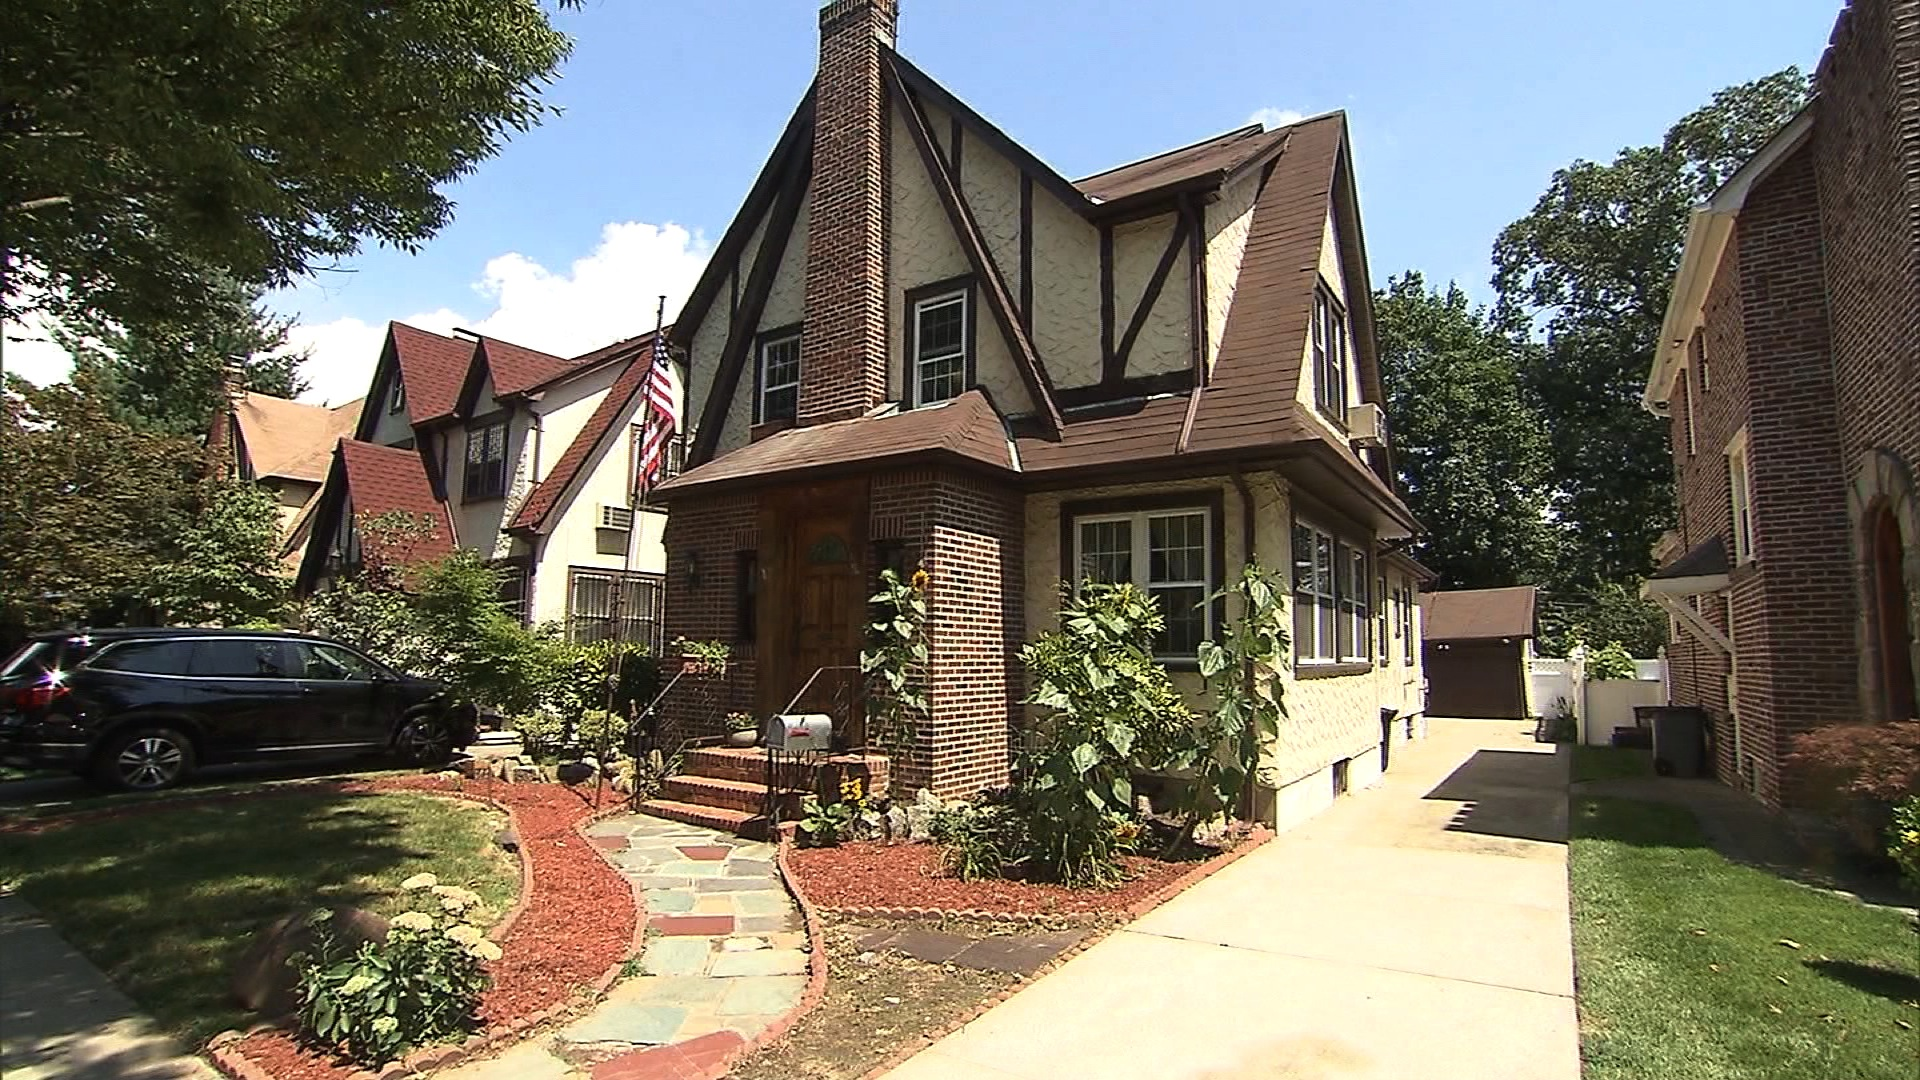 You can stay in Trumps childhood home CNN Video